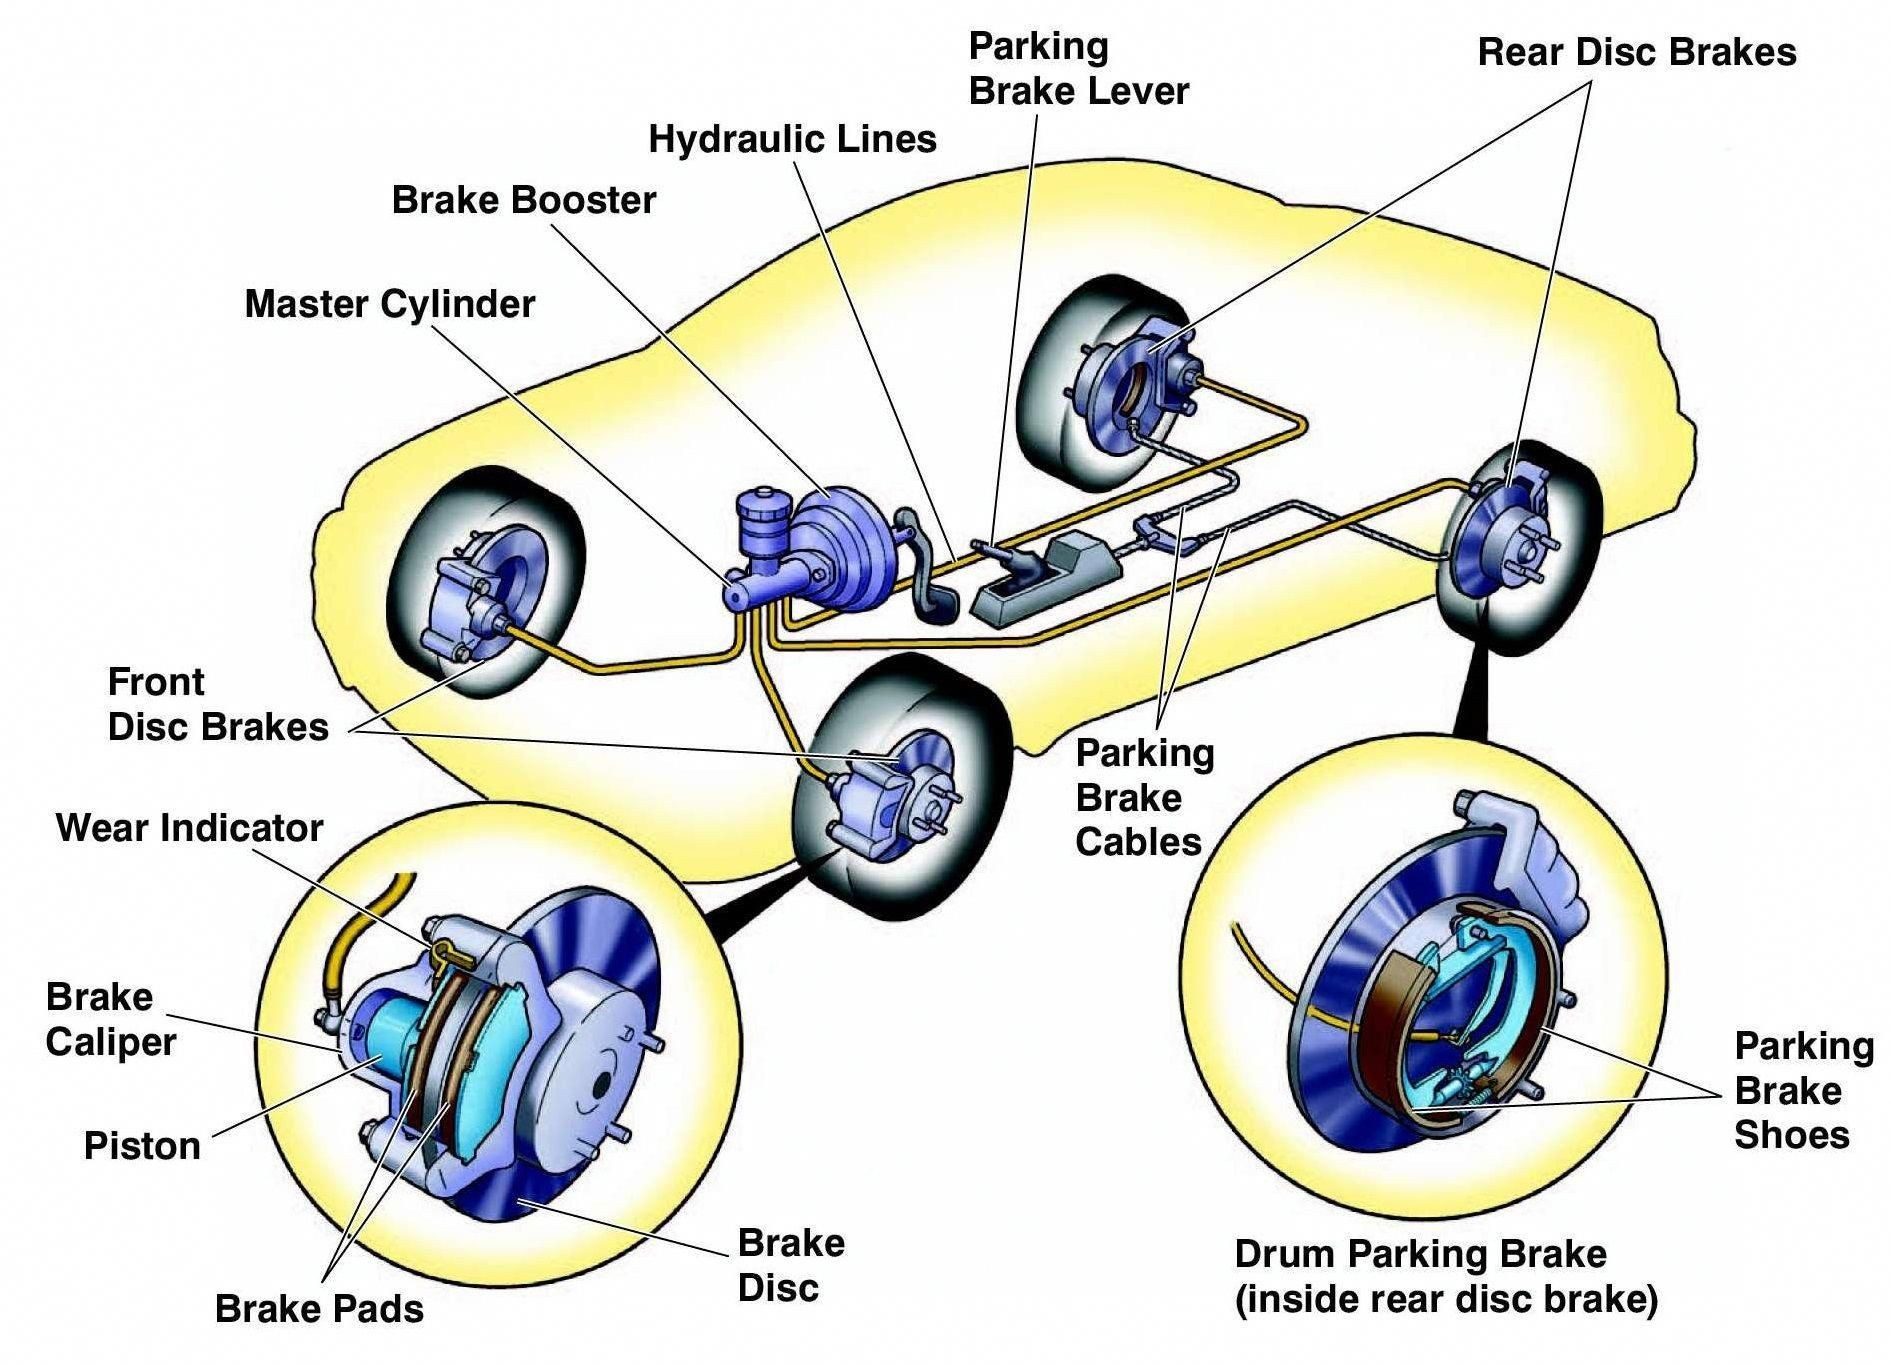 Diagram Of All Car Parts Pin by Twenty Four Diagnostics On Car Care Repair and Of Diagram Of All Car Parts